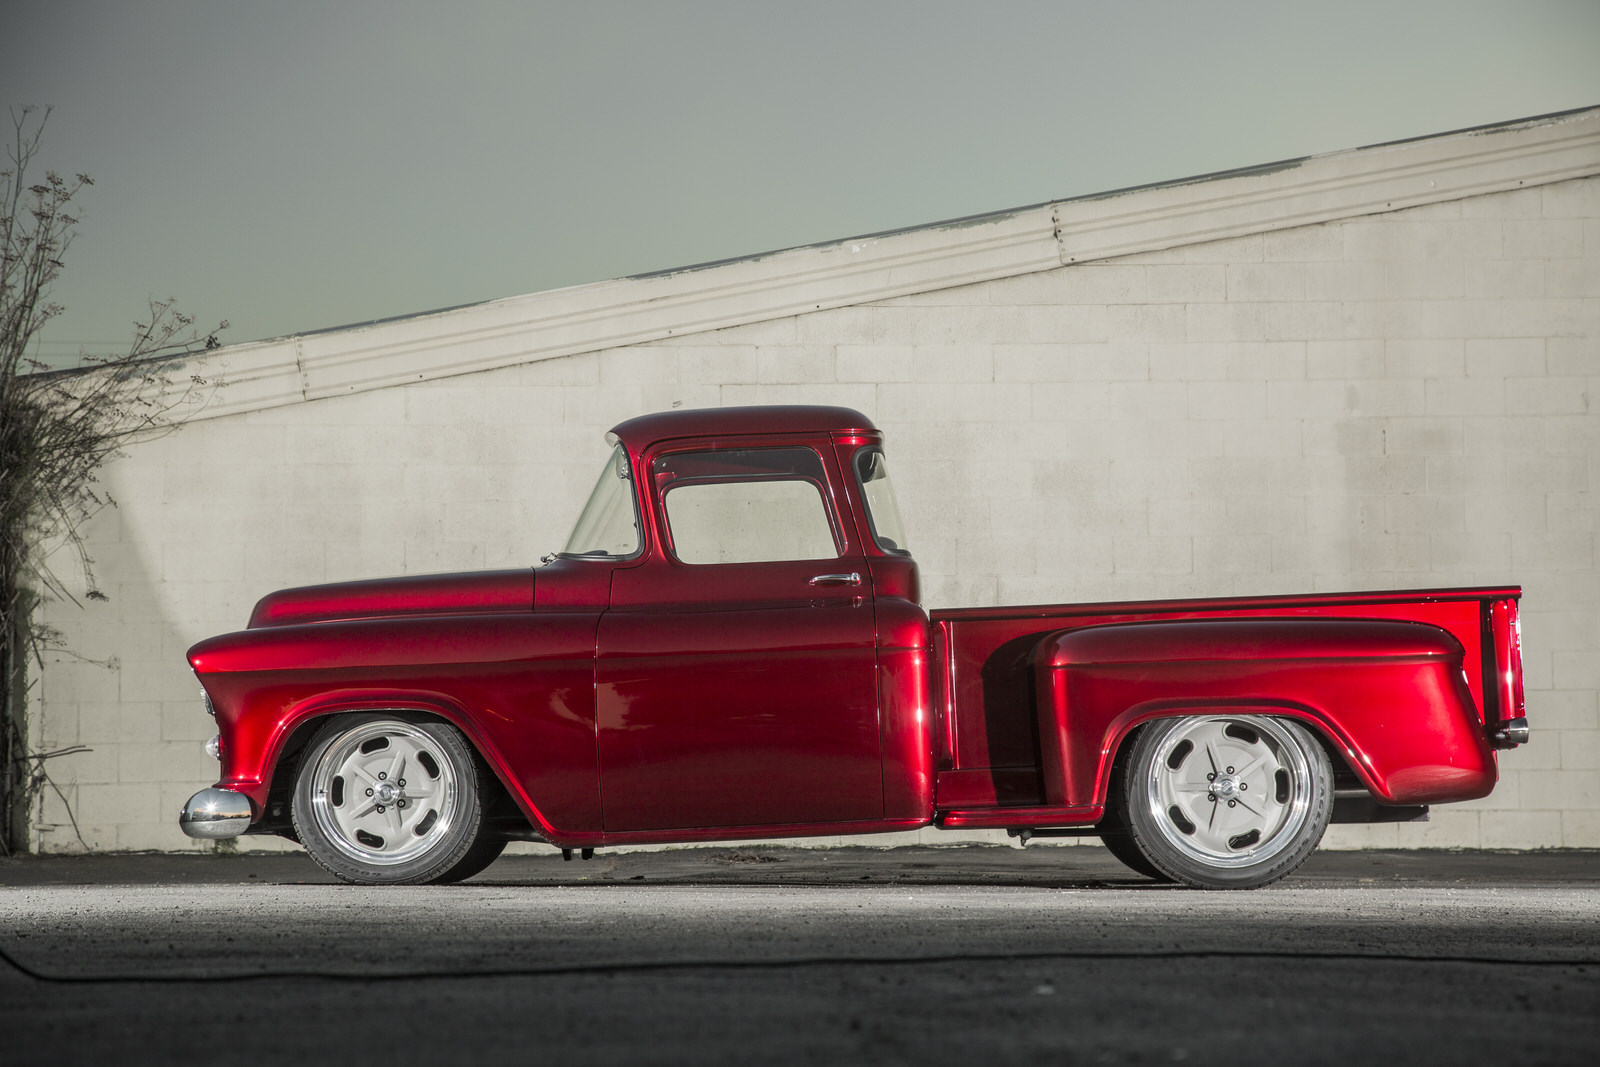 Miguel Nava 1956 Chevy Pickup - Photo by Tim Sutton